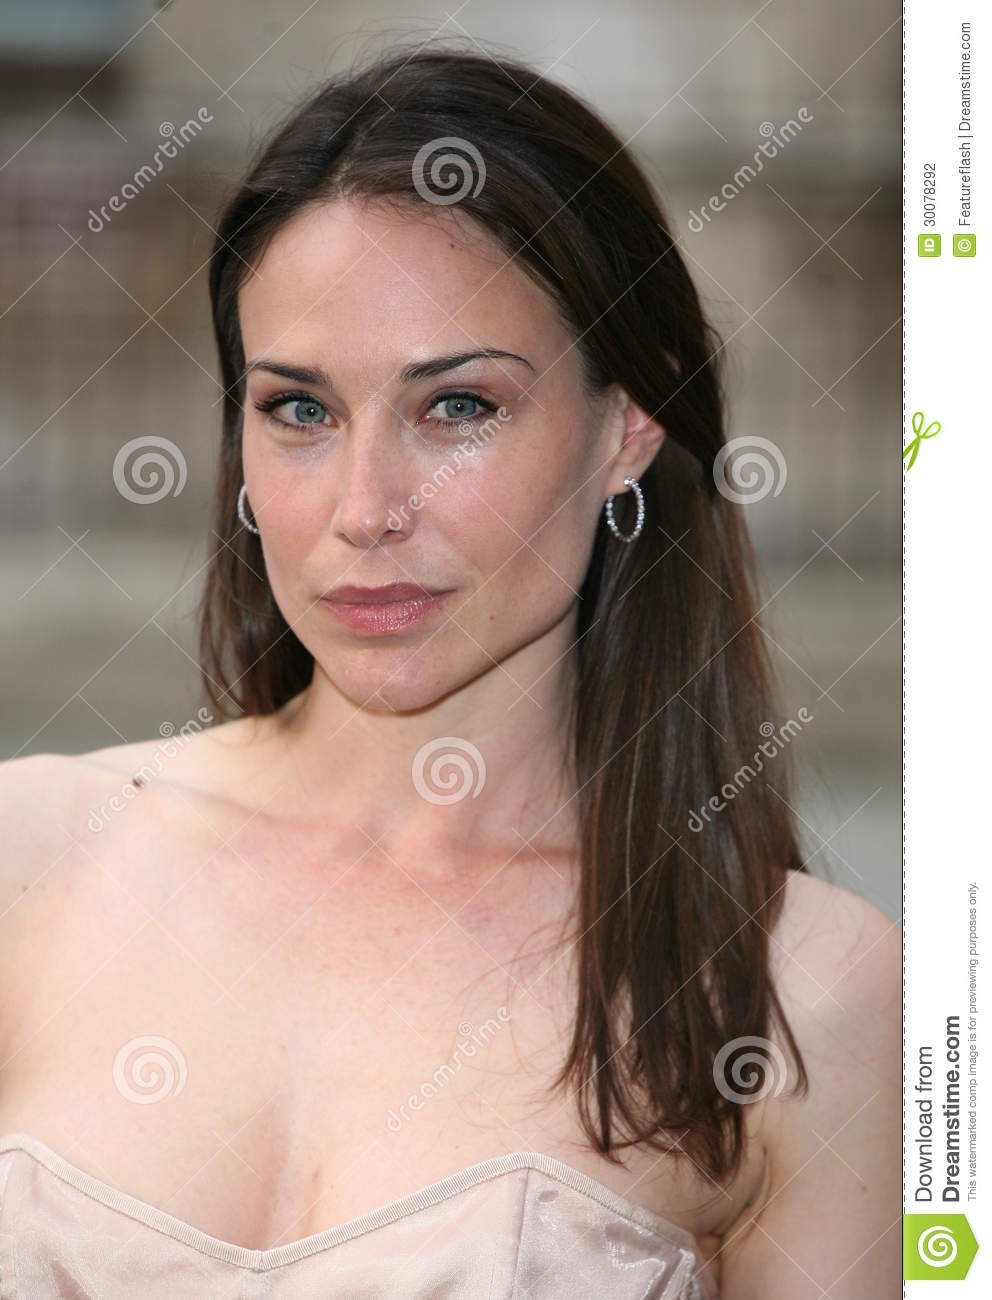 claire forlani википедияclaire forlani photos, claire forlani son, claire forlani keanu reeves, claire forlani dougray scott, claire forlani film, claire forlani police academy 7, claire forlani net worth, claire forlani keanu reeves dating, claire forlani biografie, claire forlani now, claire forlani brad pitt, claire forlani filmleri, claire forlani oggi, claire forlani биография, claire forlani фильмография, claire forlani википедия, claire forlani joe black, claire forlani and brad pitt movie, claire forlani keanu reeves movie, claire forlani instagram official